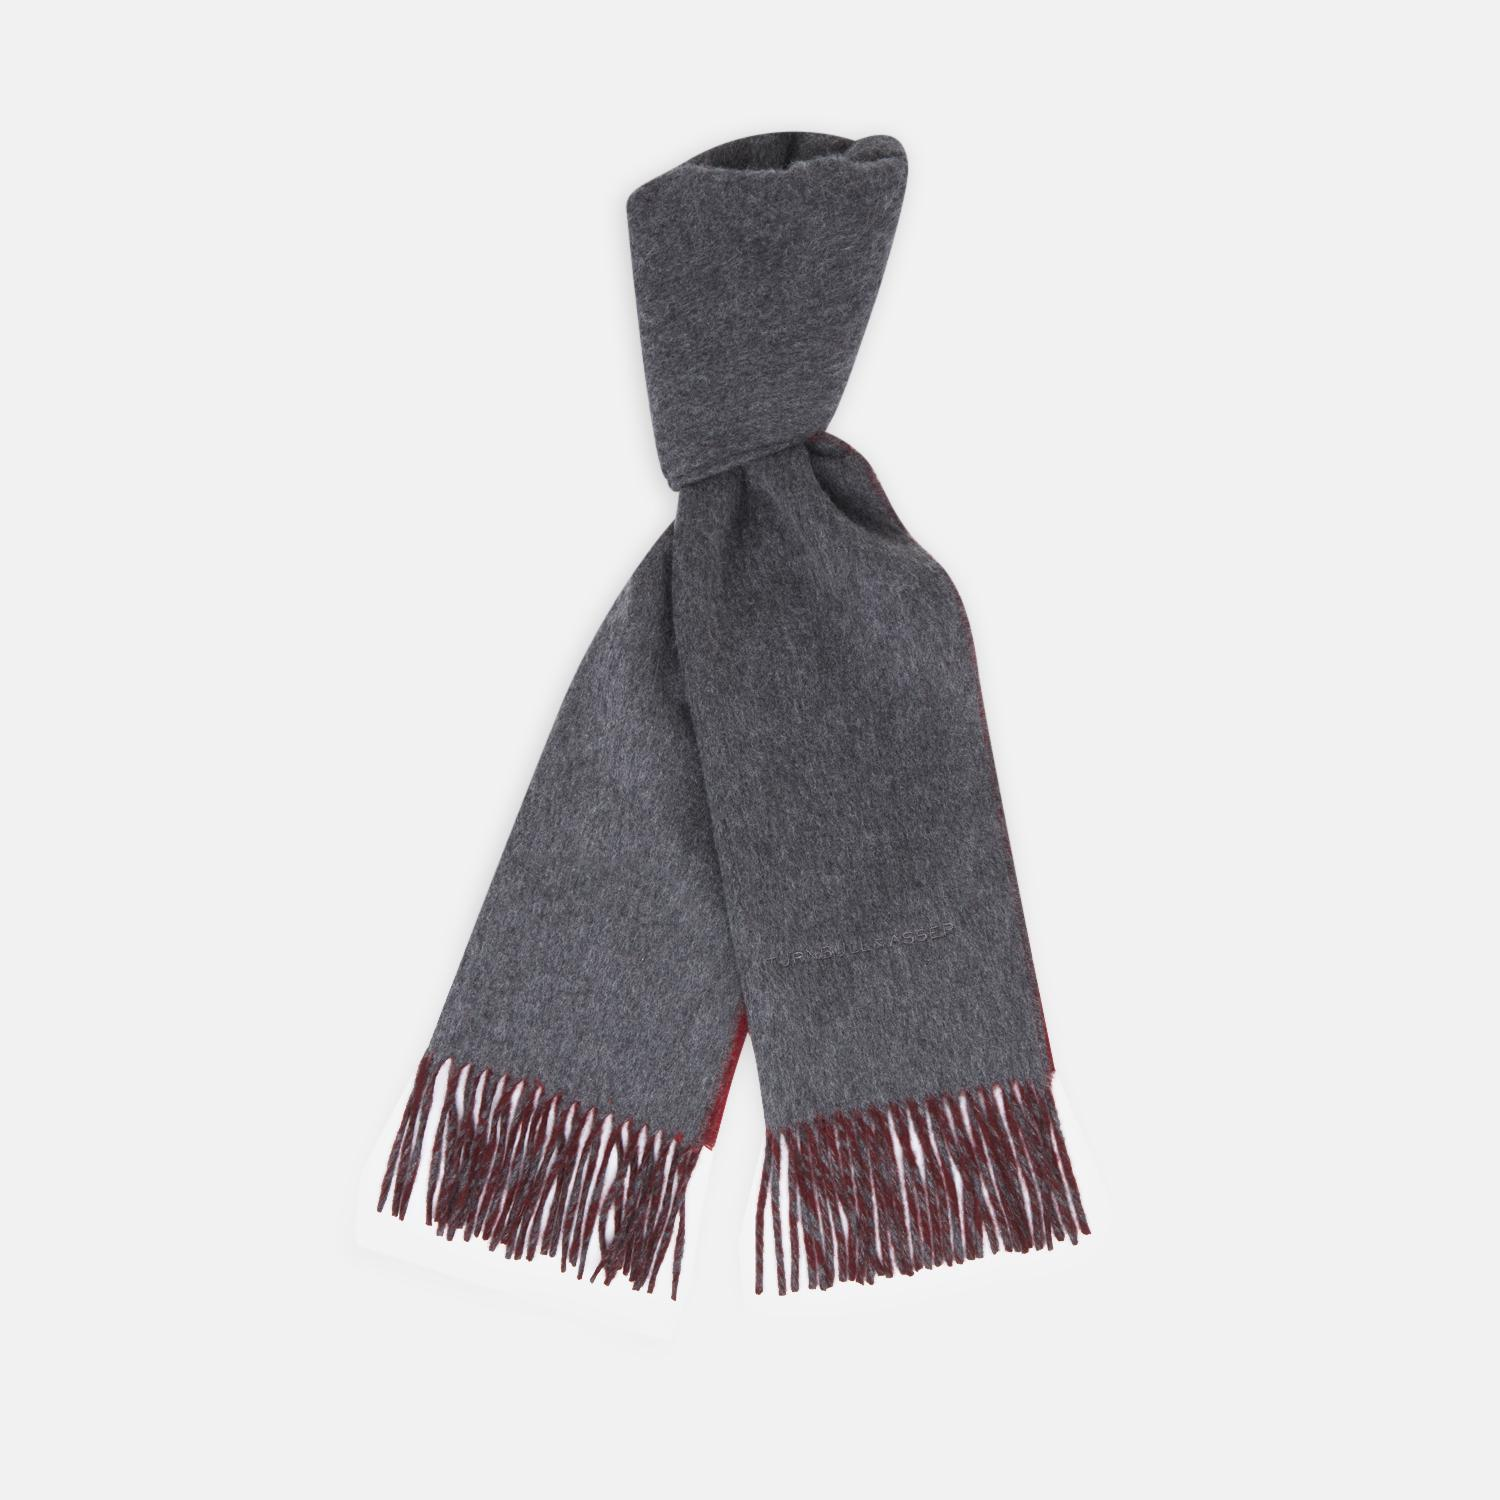 2238059ed6a49 Turnbull & Asser Grey And Red Cashmere Scarf for Men - Lyst